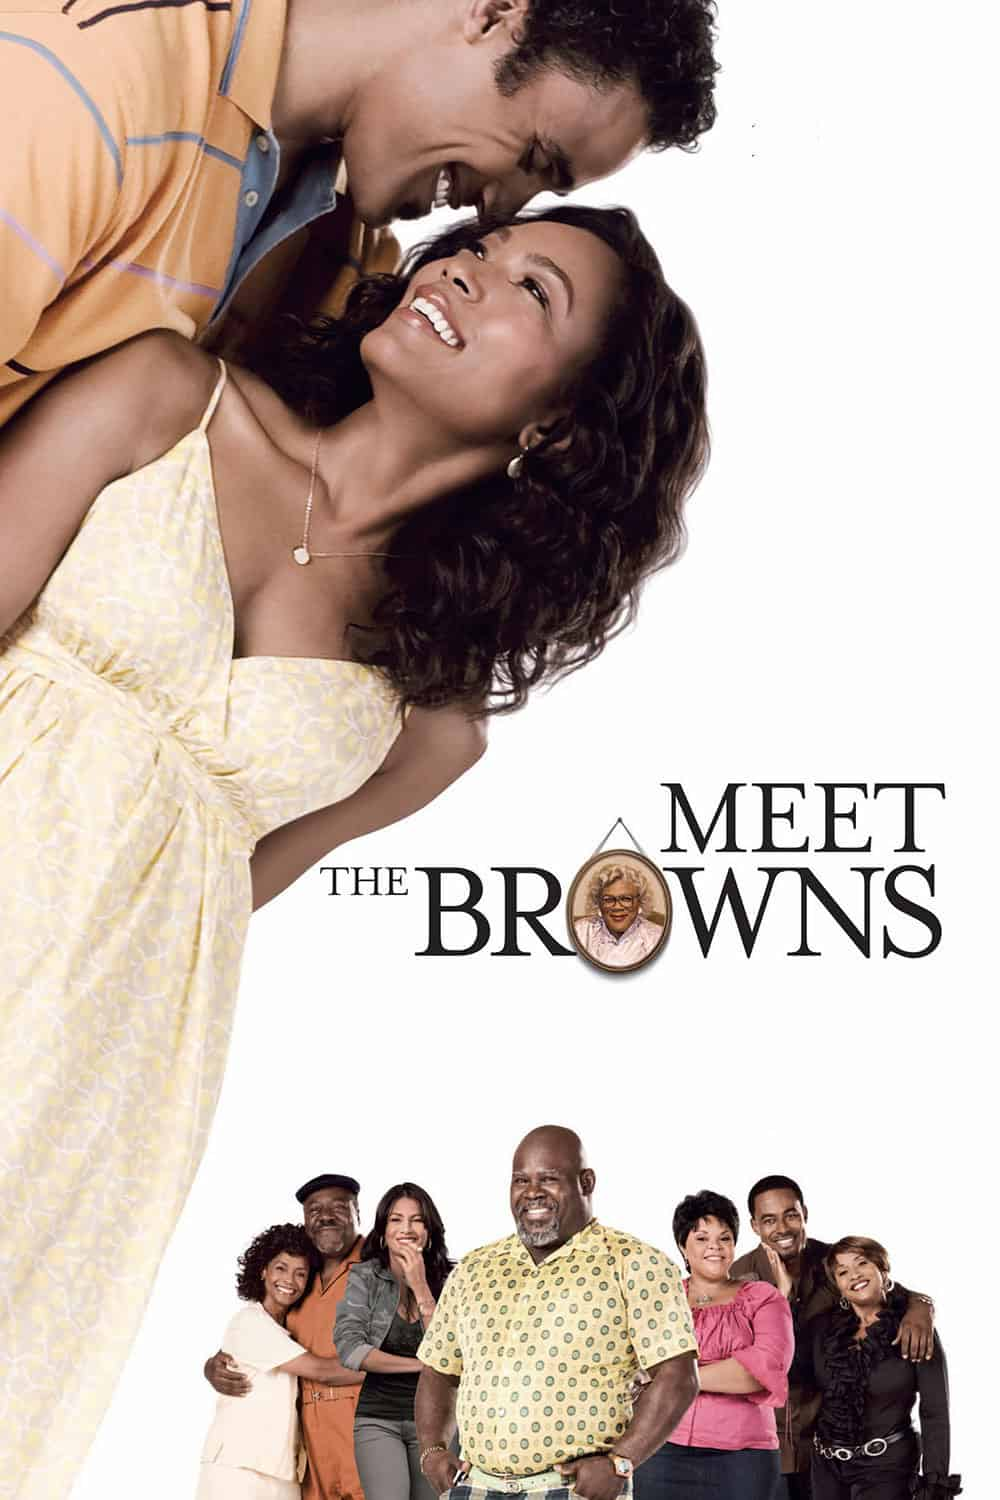 Meet the Browns, 2008